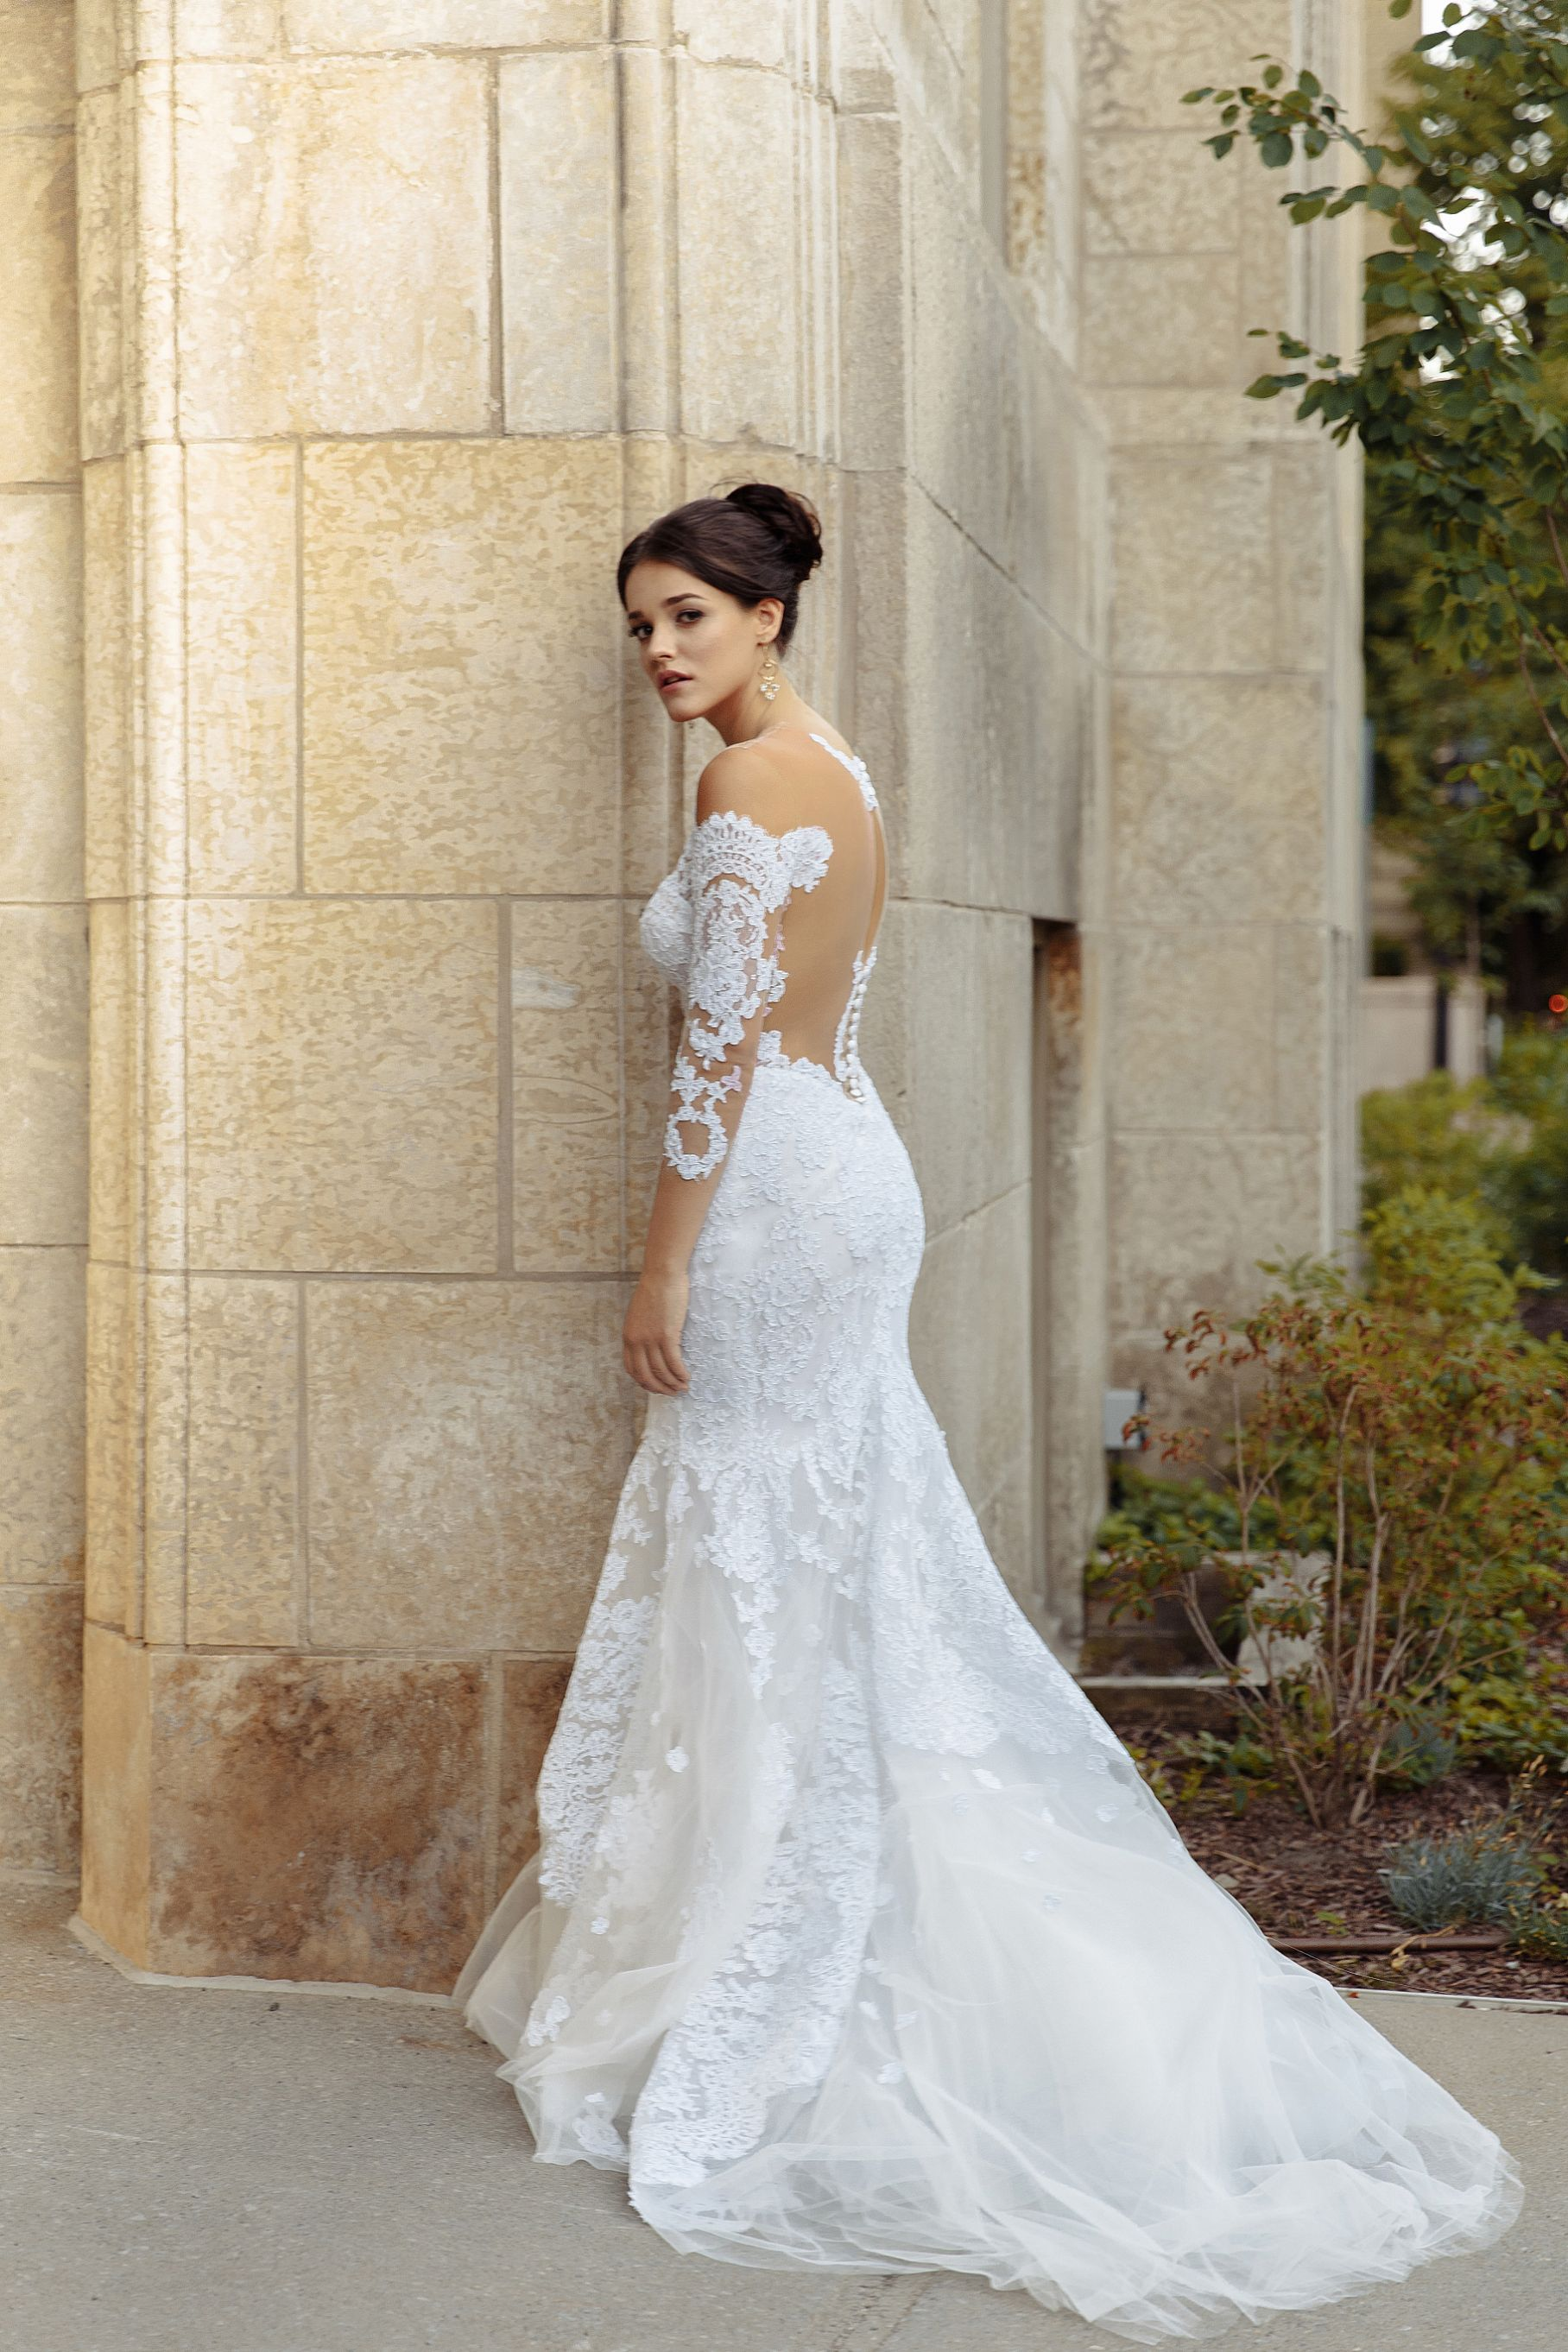 lilia haute couture wedding dress designer montreal french lace